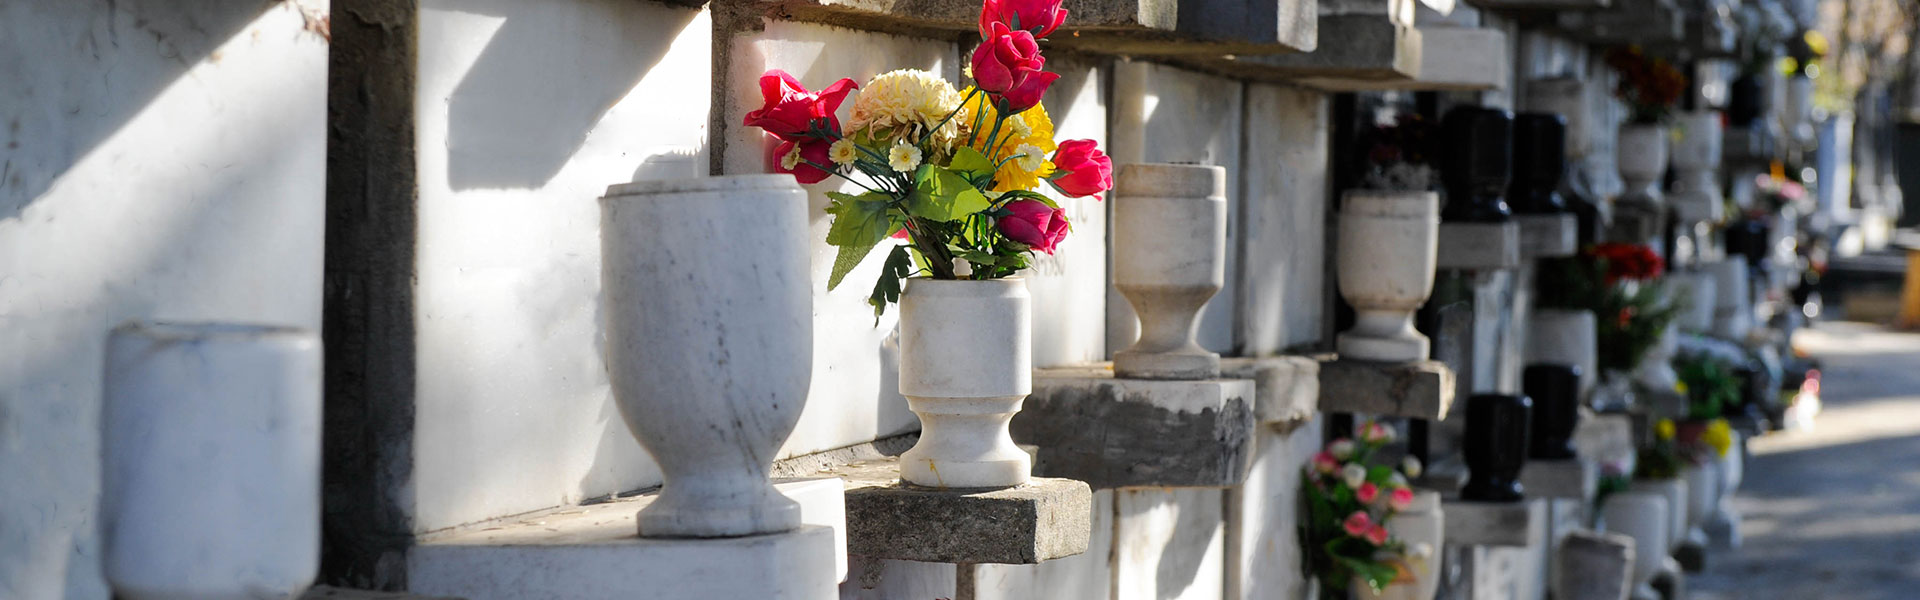 Biodegradable Urns